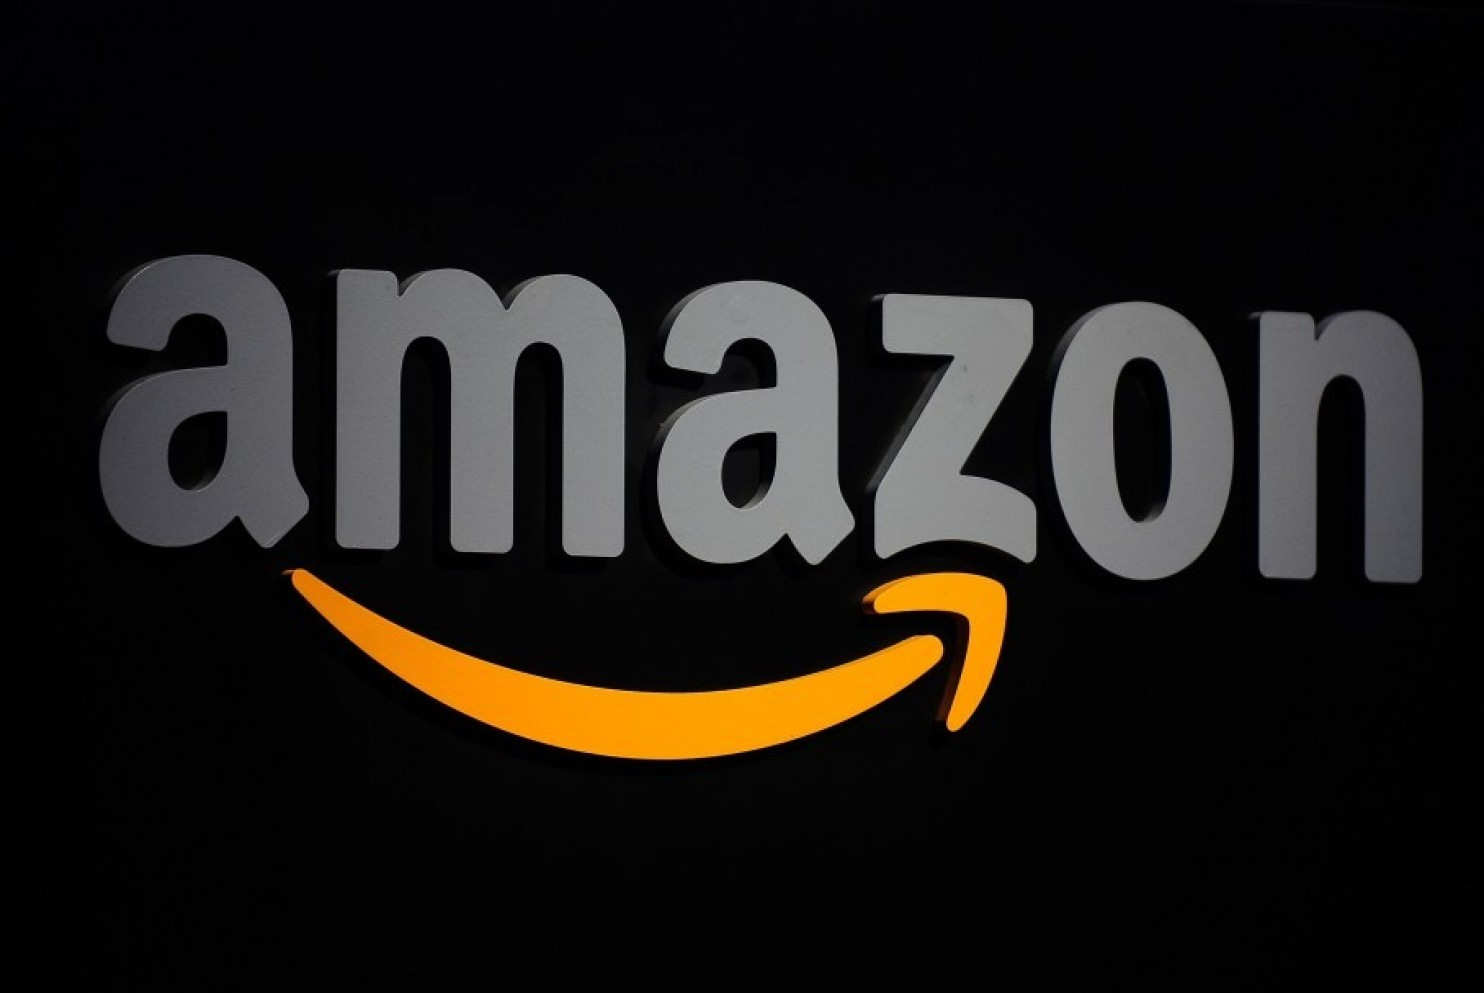 amazon 039 s simple storage service had difficulty sending and receiving clients 039 data for more than 3 hours photo afp